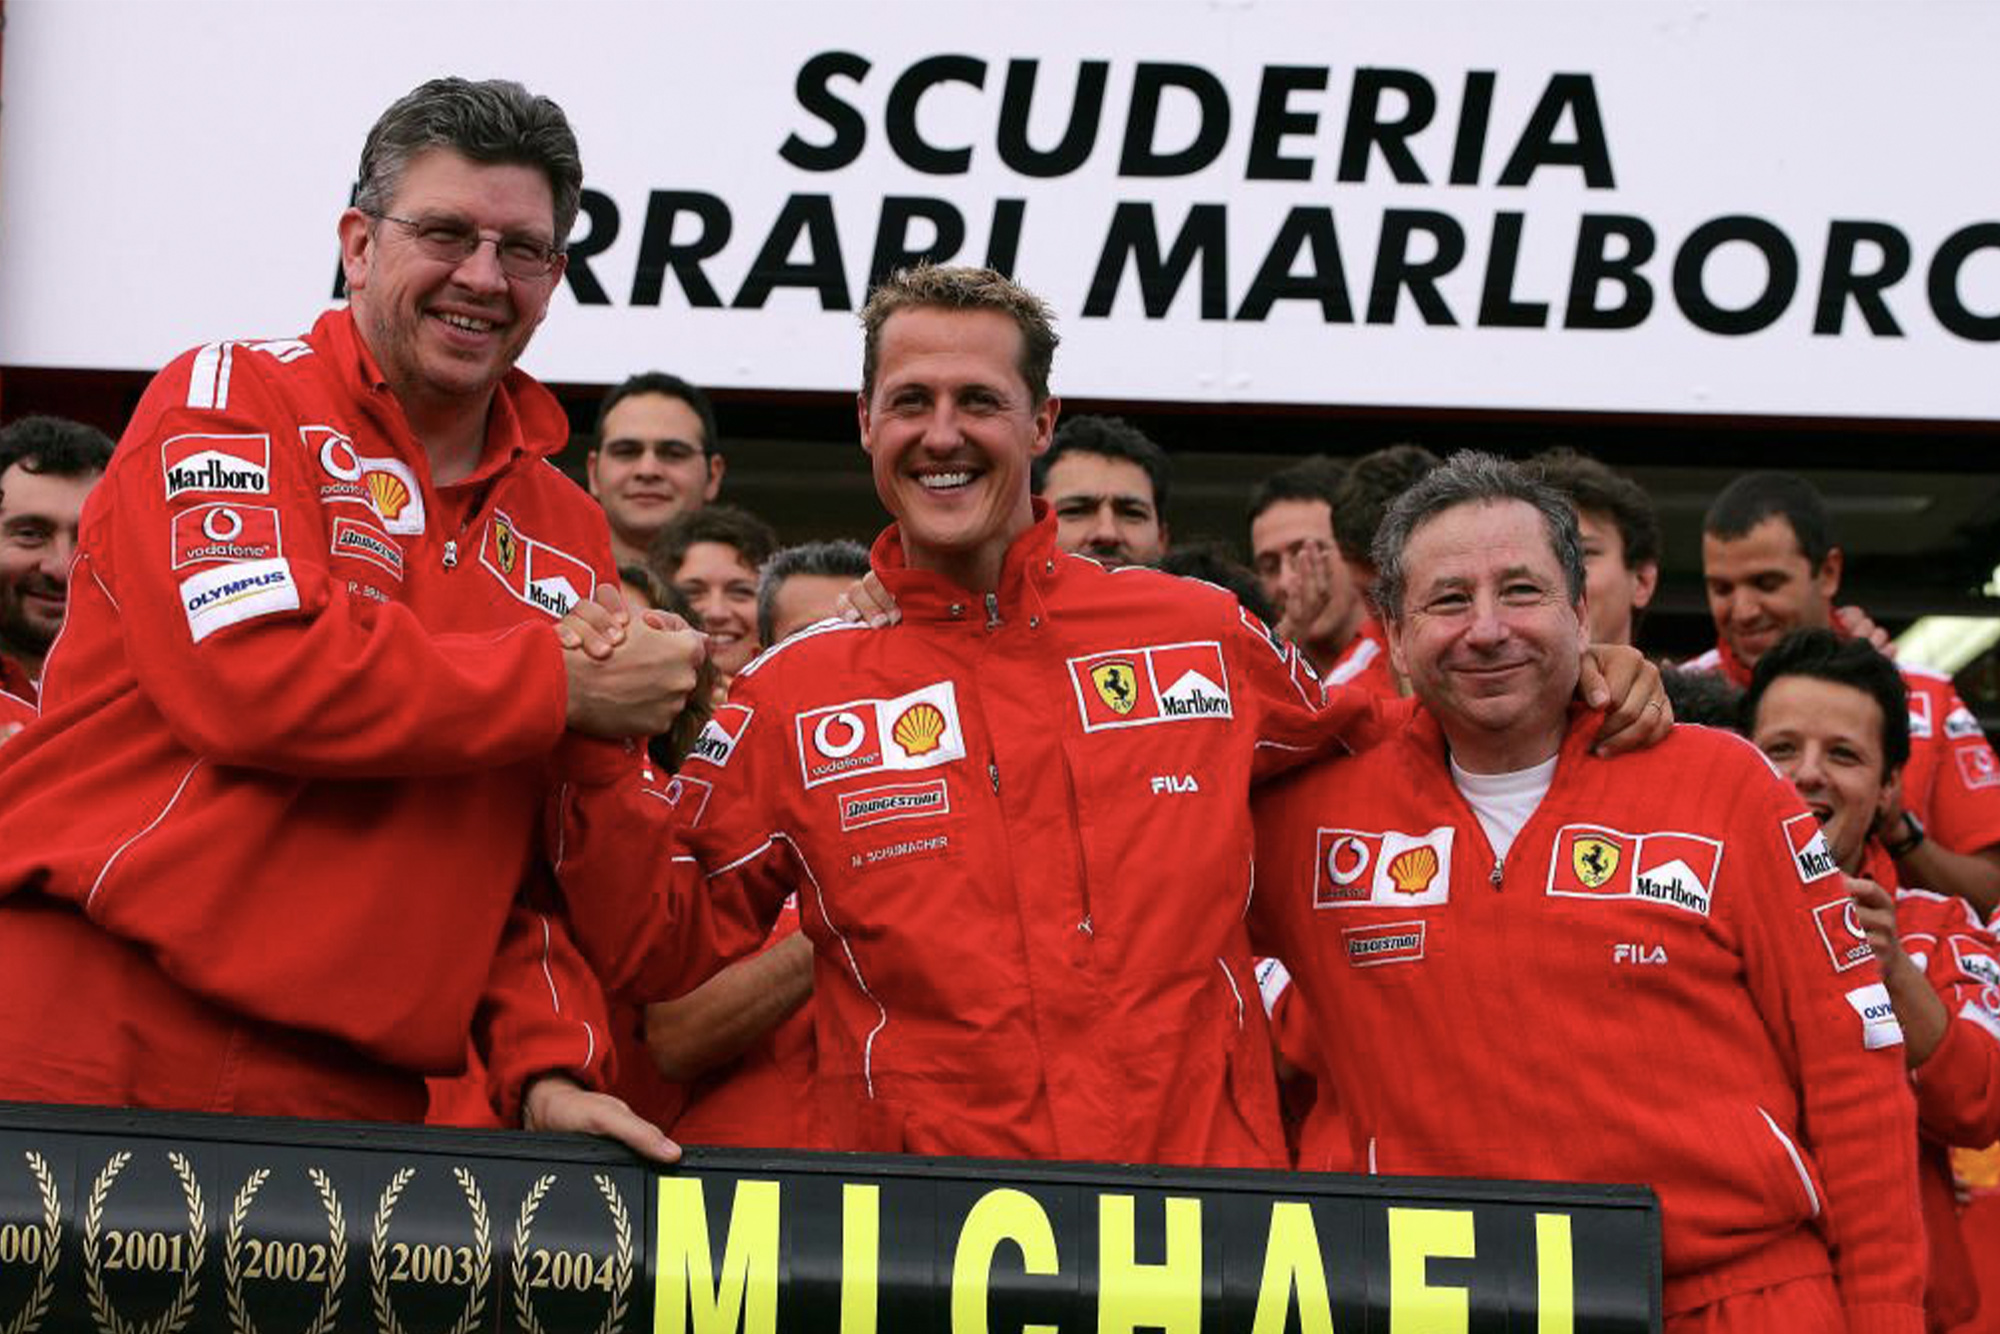 Ross Brawn, Michael Schumacher and Jean Todt at the 2004 Belgian Grand Prix